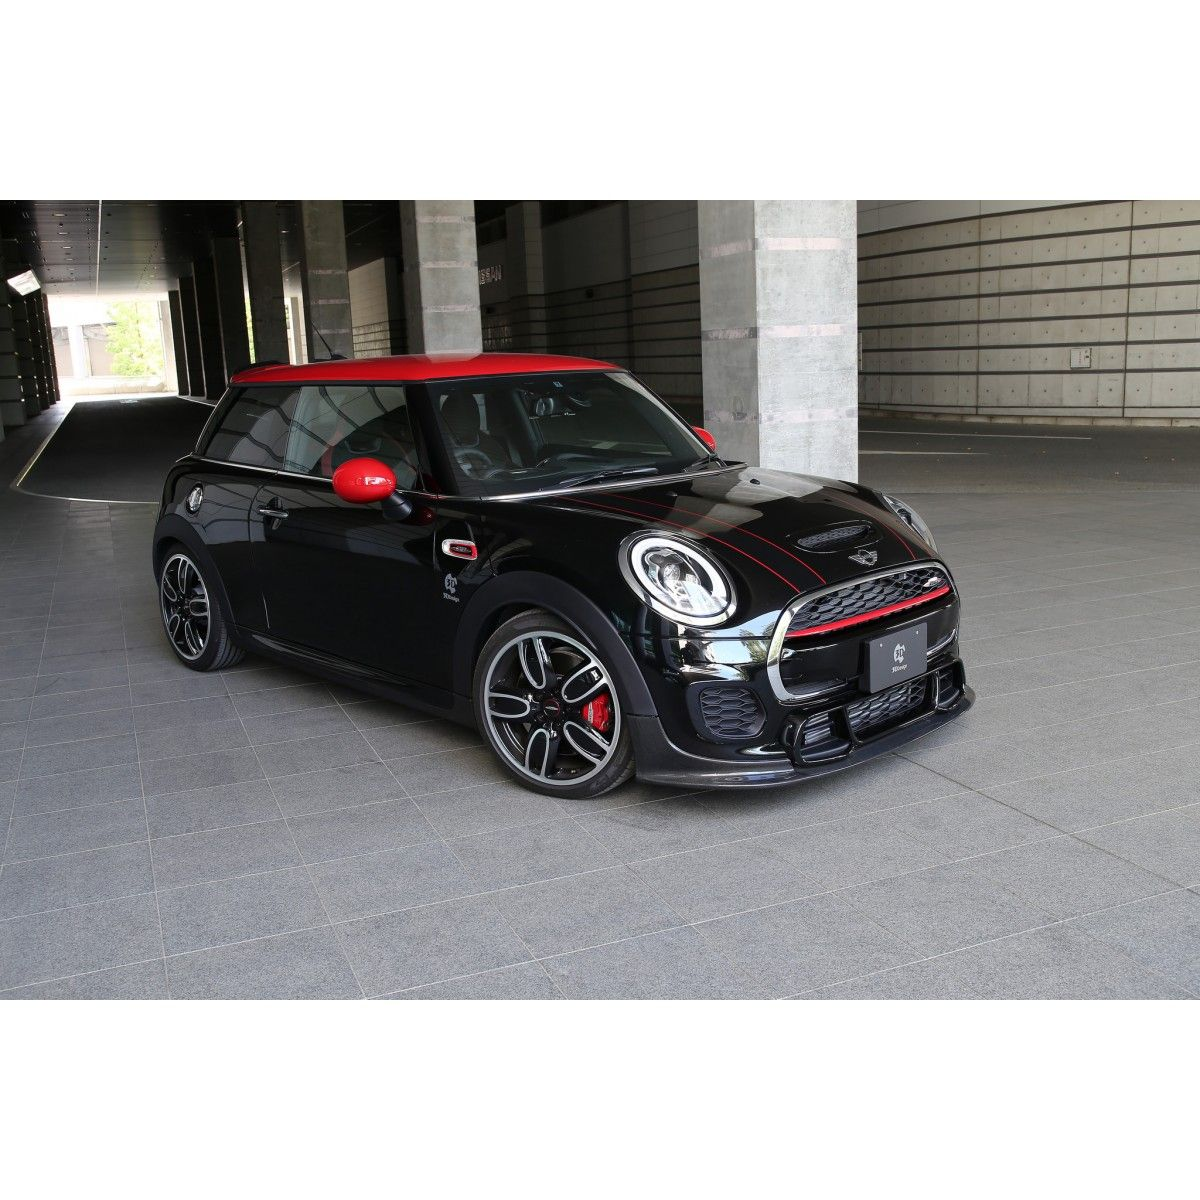 3ddesign carbon frontlippe f r mini cooper jcw f55 f56 trance pinterest mini cooper mini. Black Bedroom Furniture Sets. Home Design Ideas